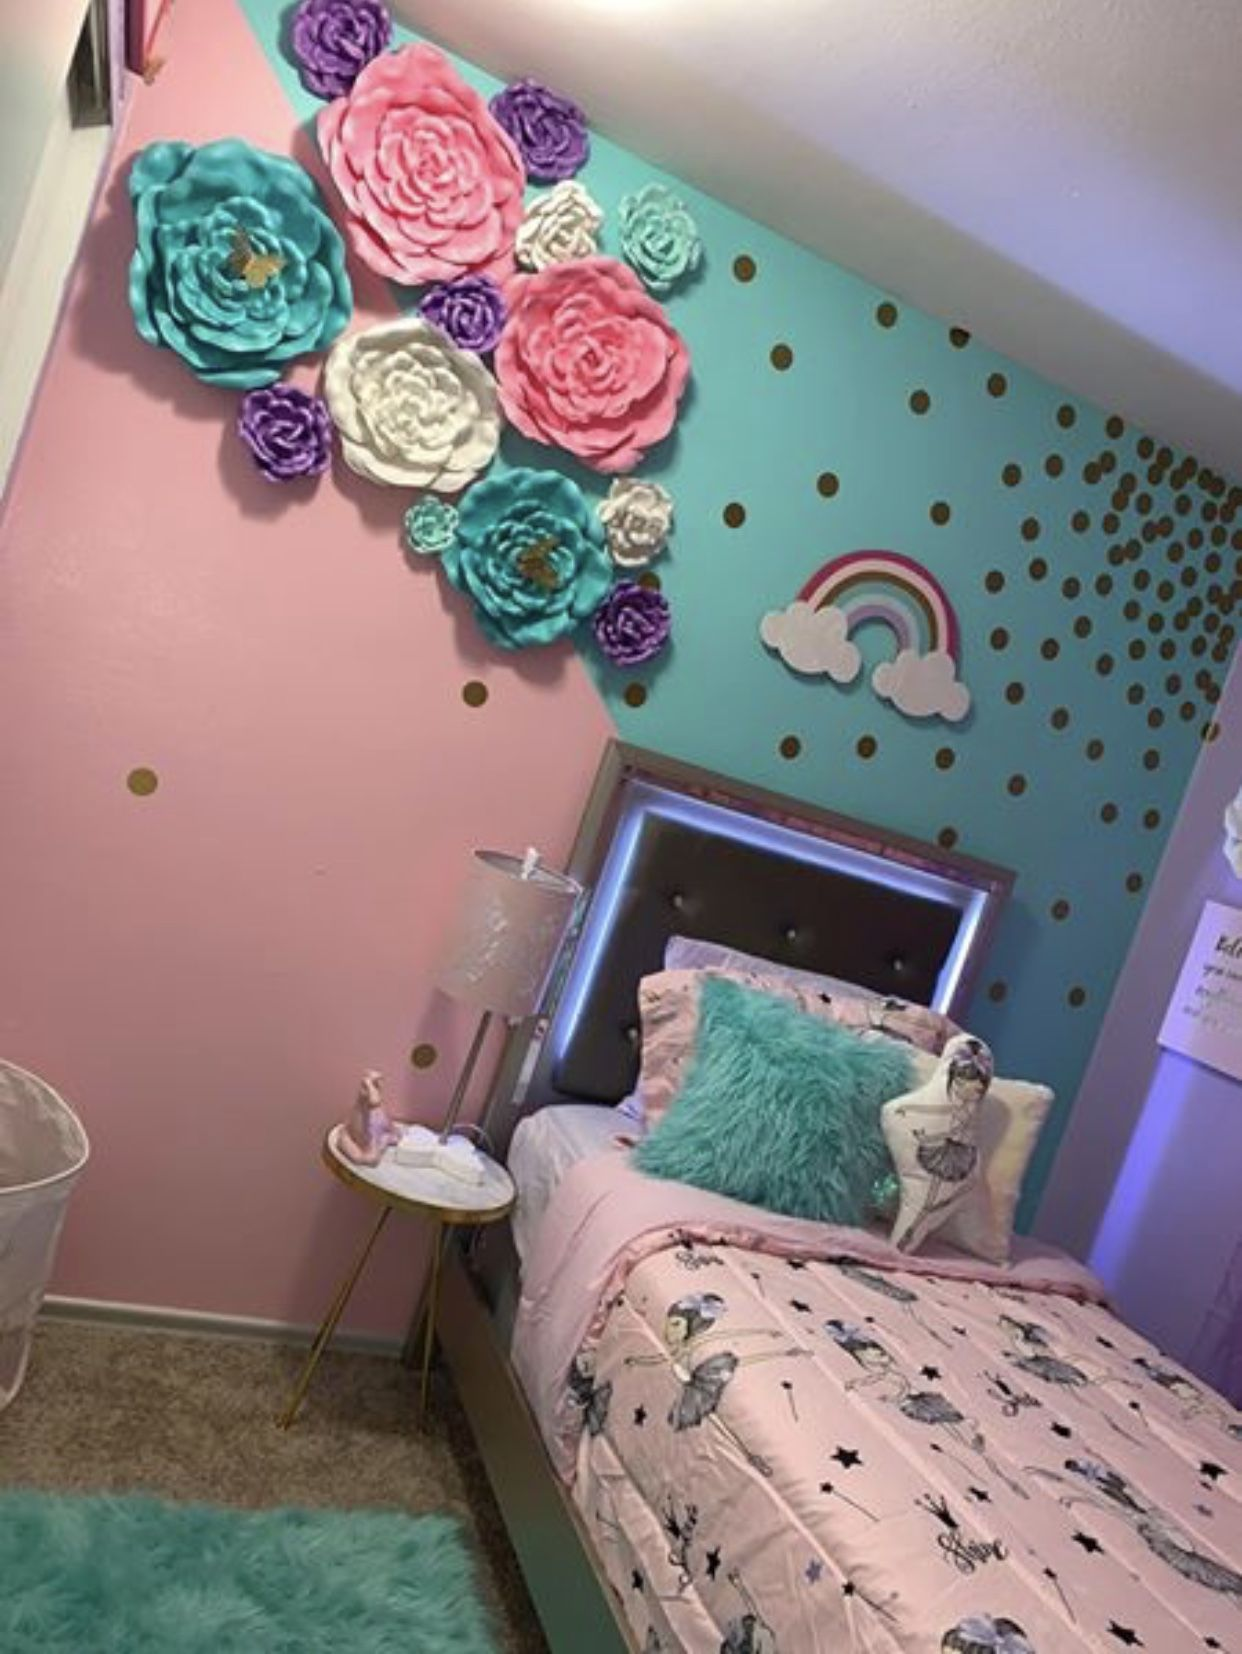 Pin by LaTavia💜 on Kids bedroom (With images) | Unicorn ...